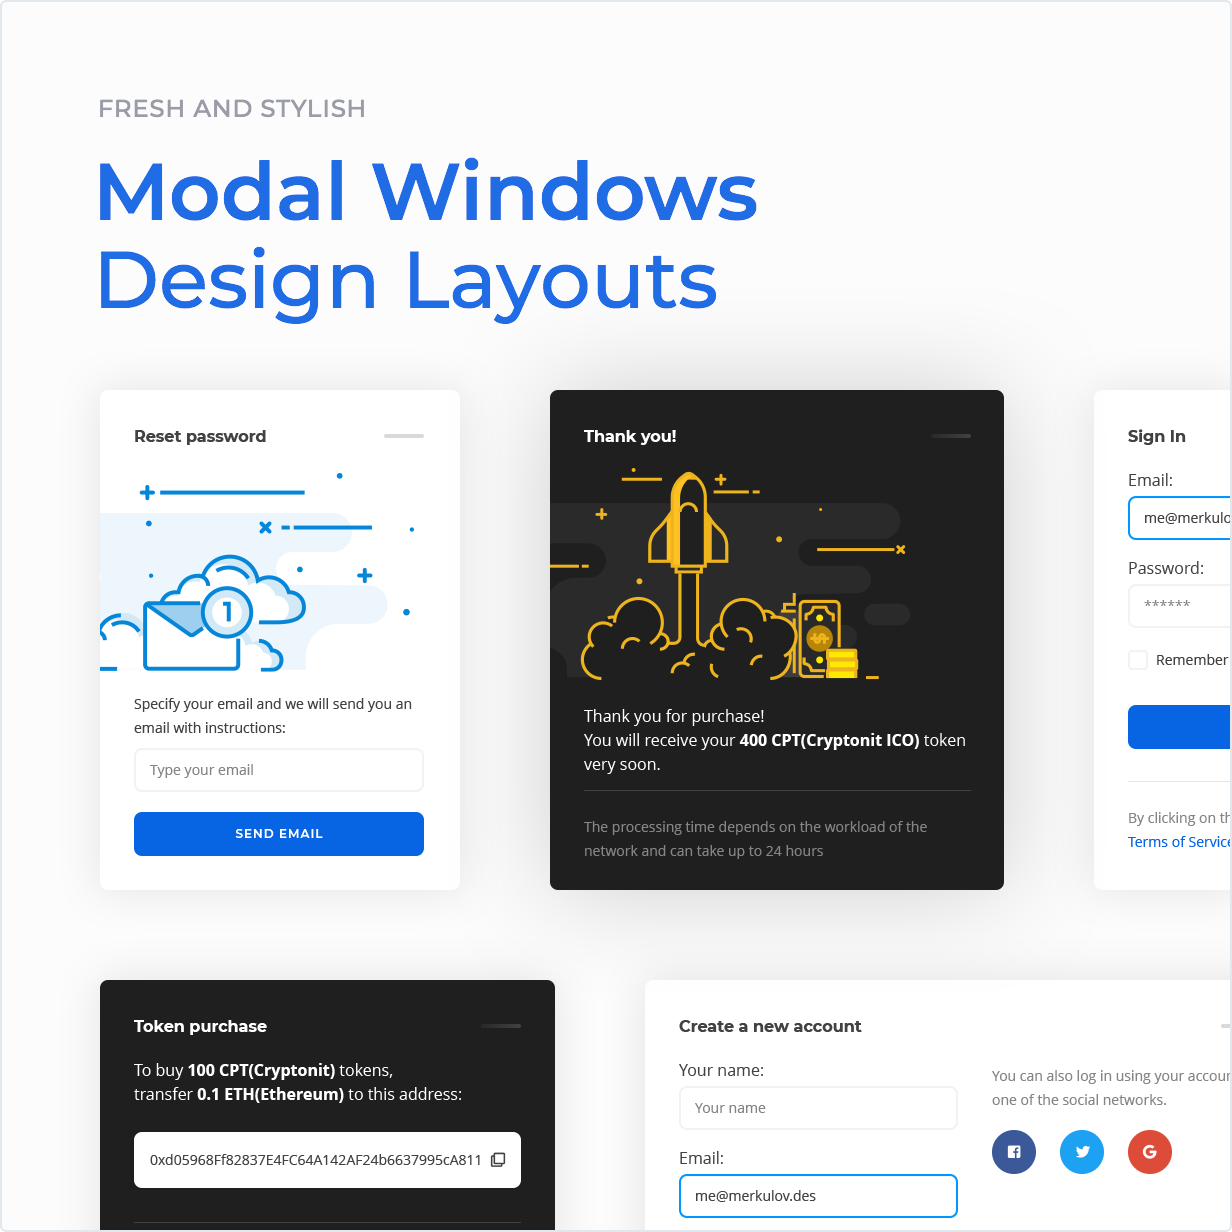 Fresh and stylish Modal windows design layouts